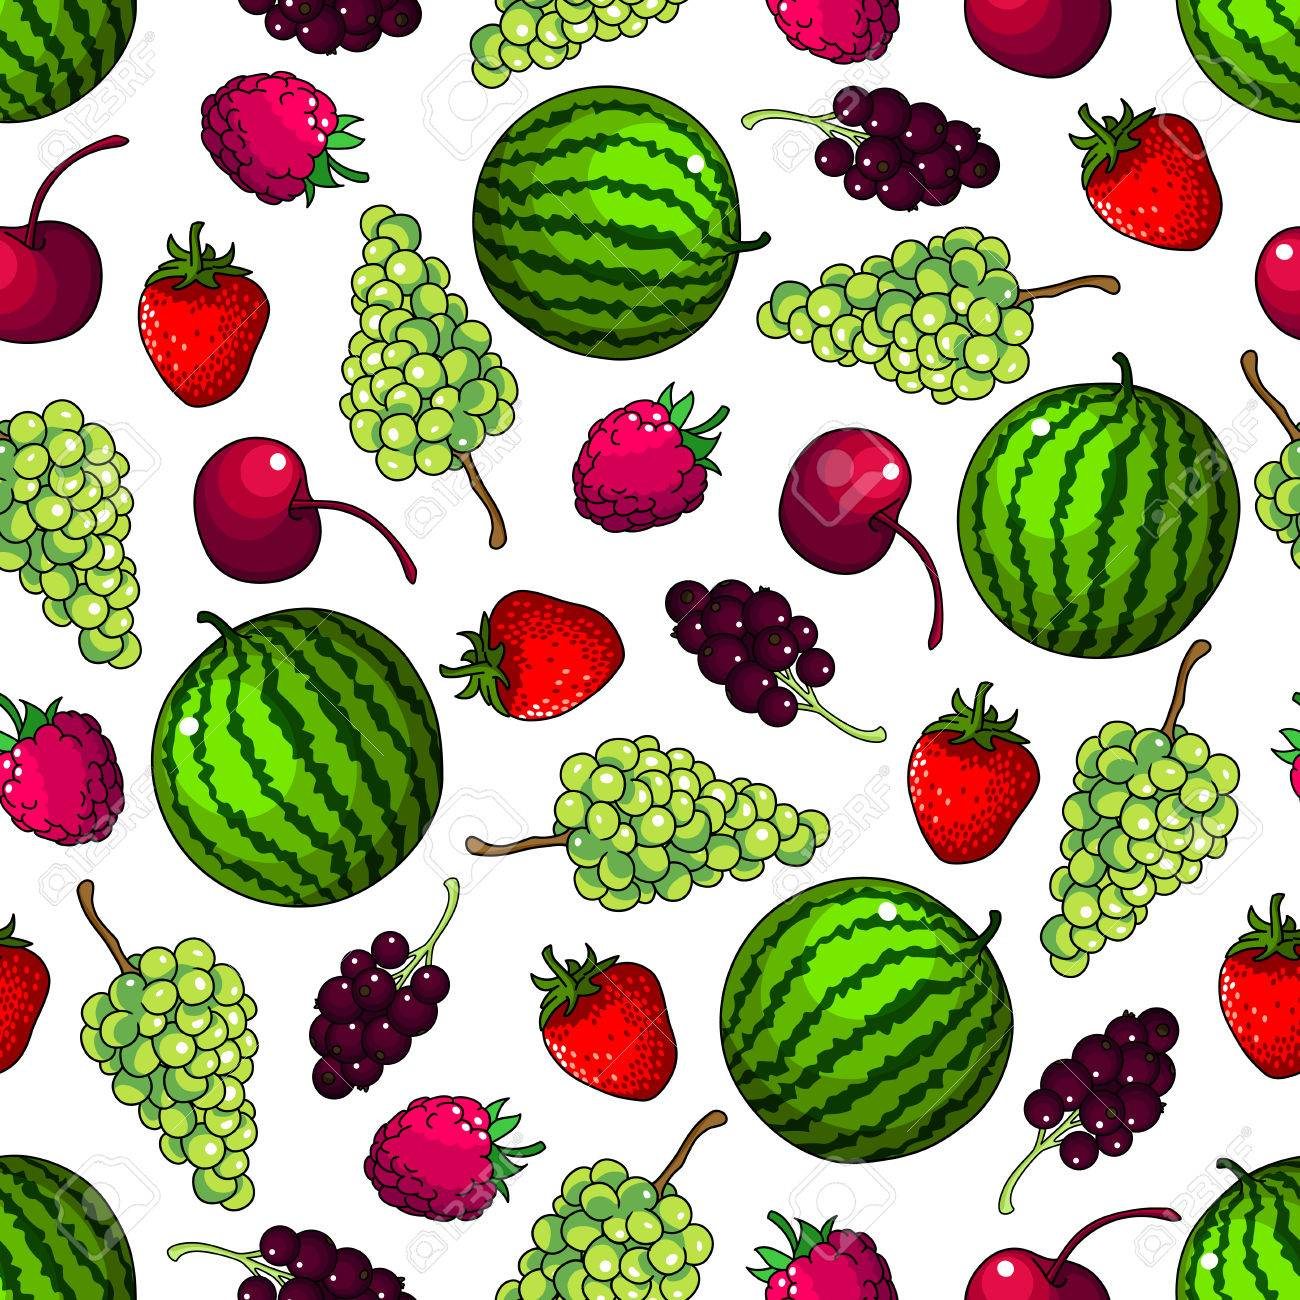 Fruits Seamless Background. Vector Wallpaper With Pattern Of Watermelon,  Grape, Strawberry, Cherry